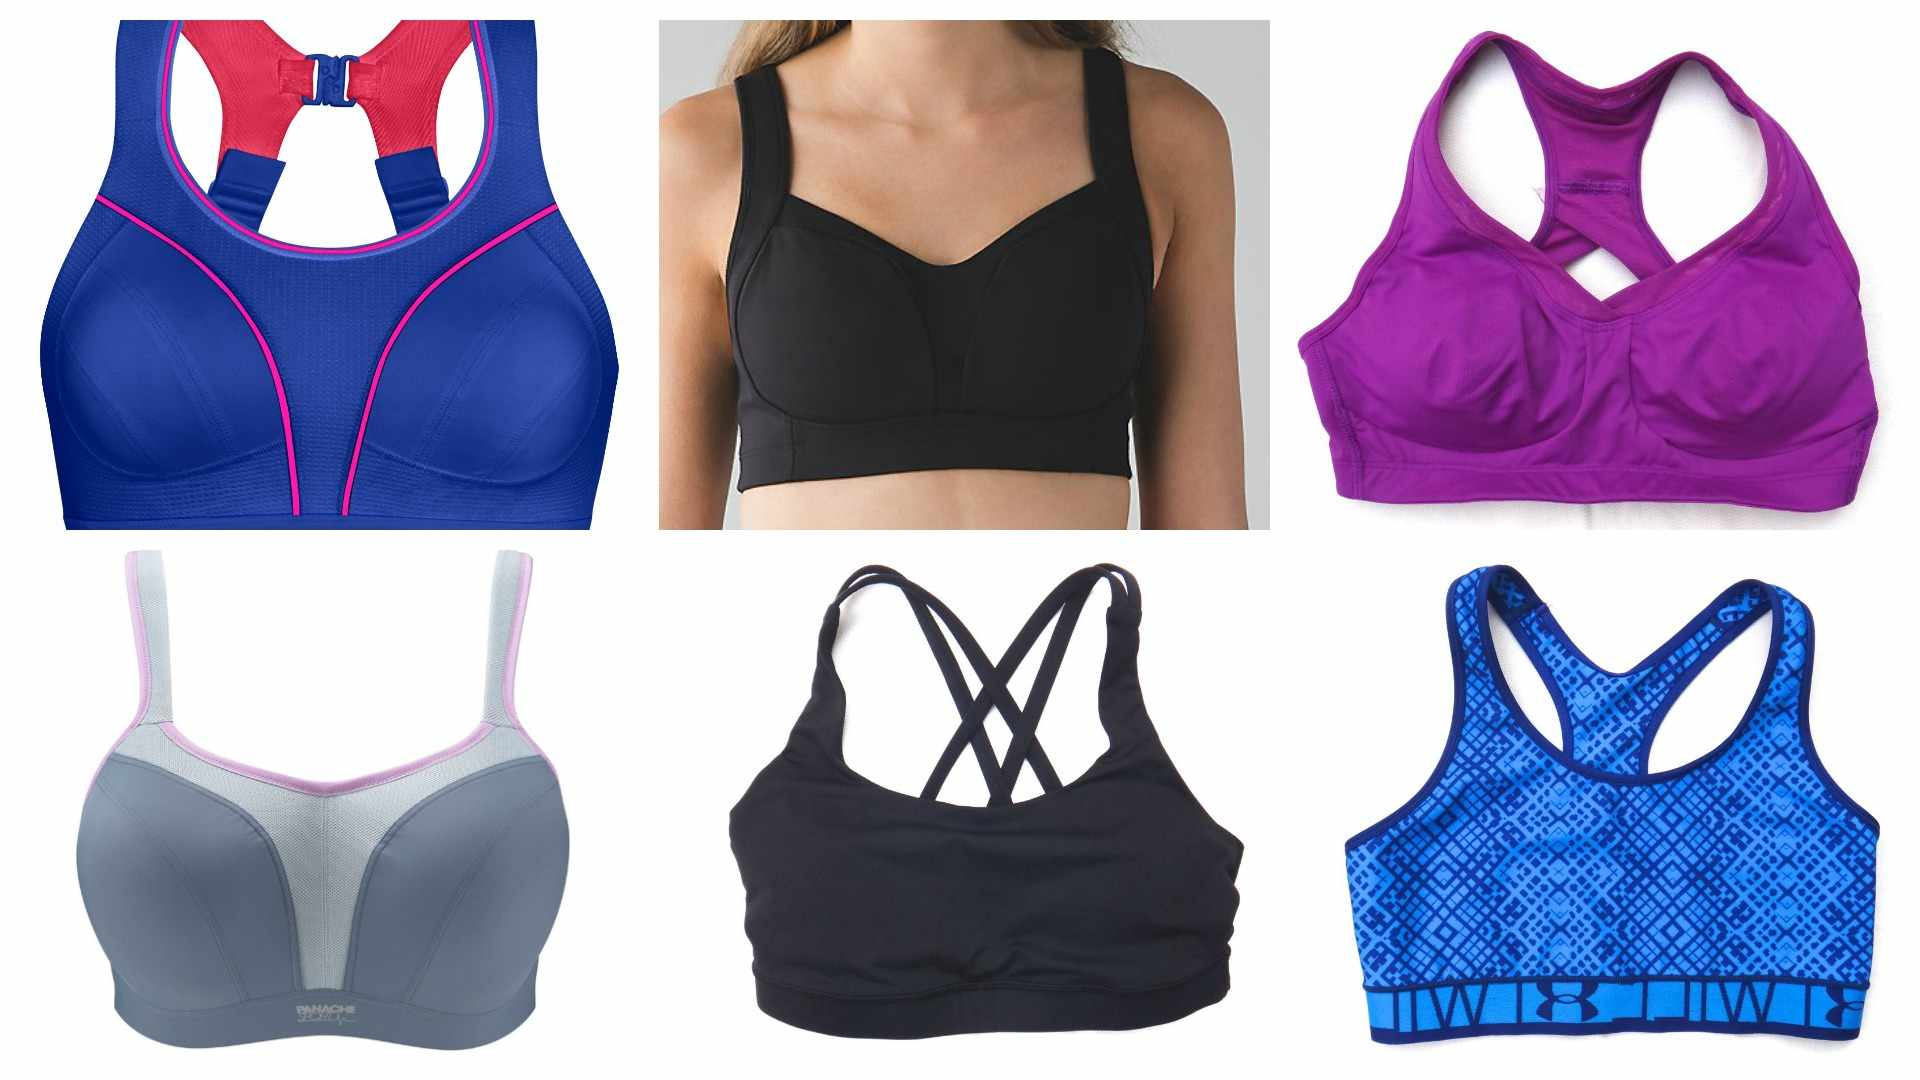 Our pick of the best sports bras for road cycling and mountain biking